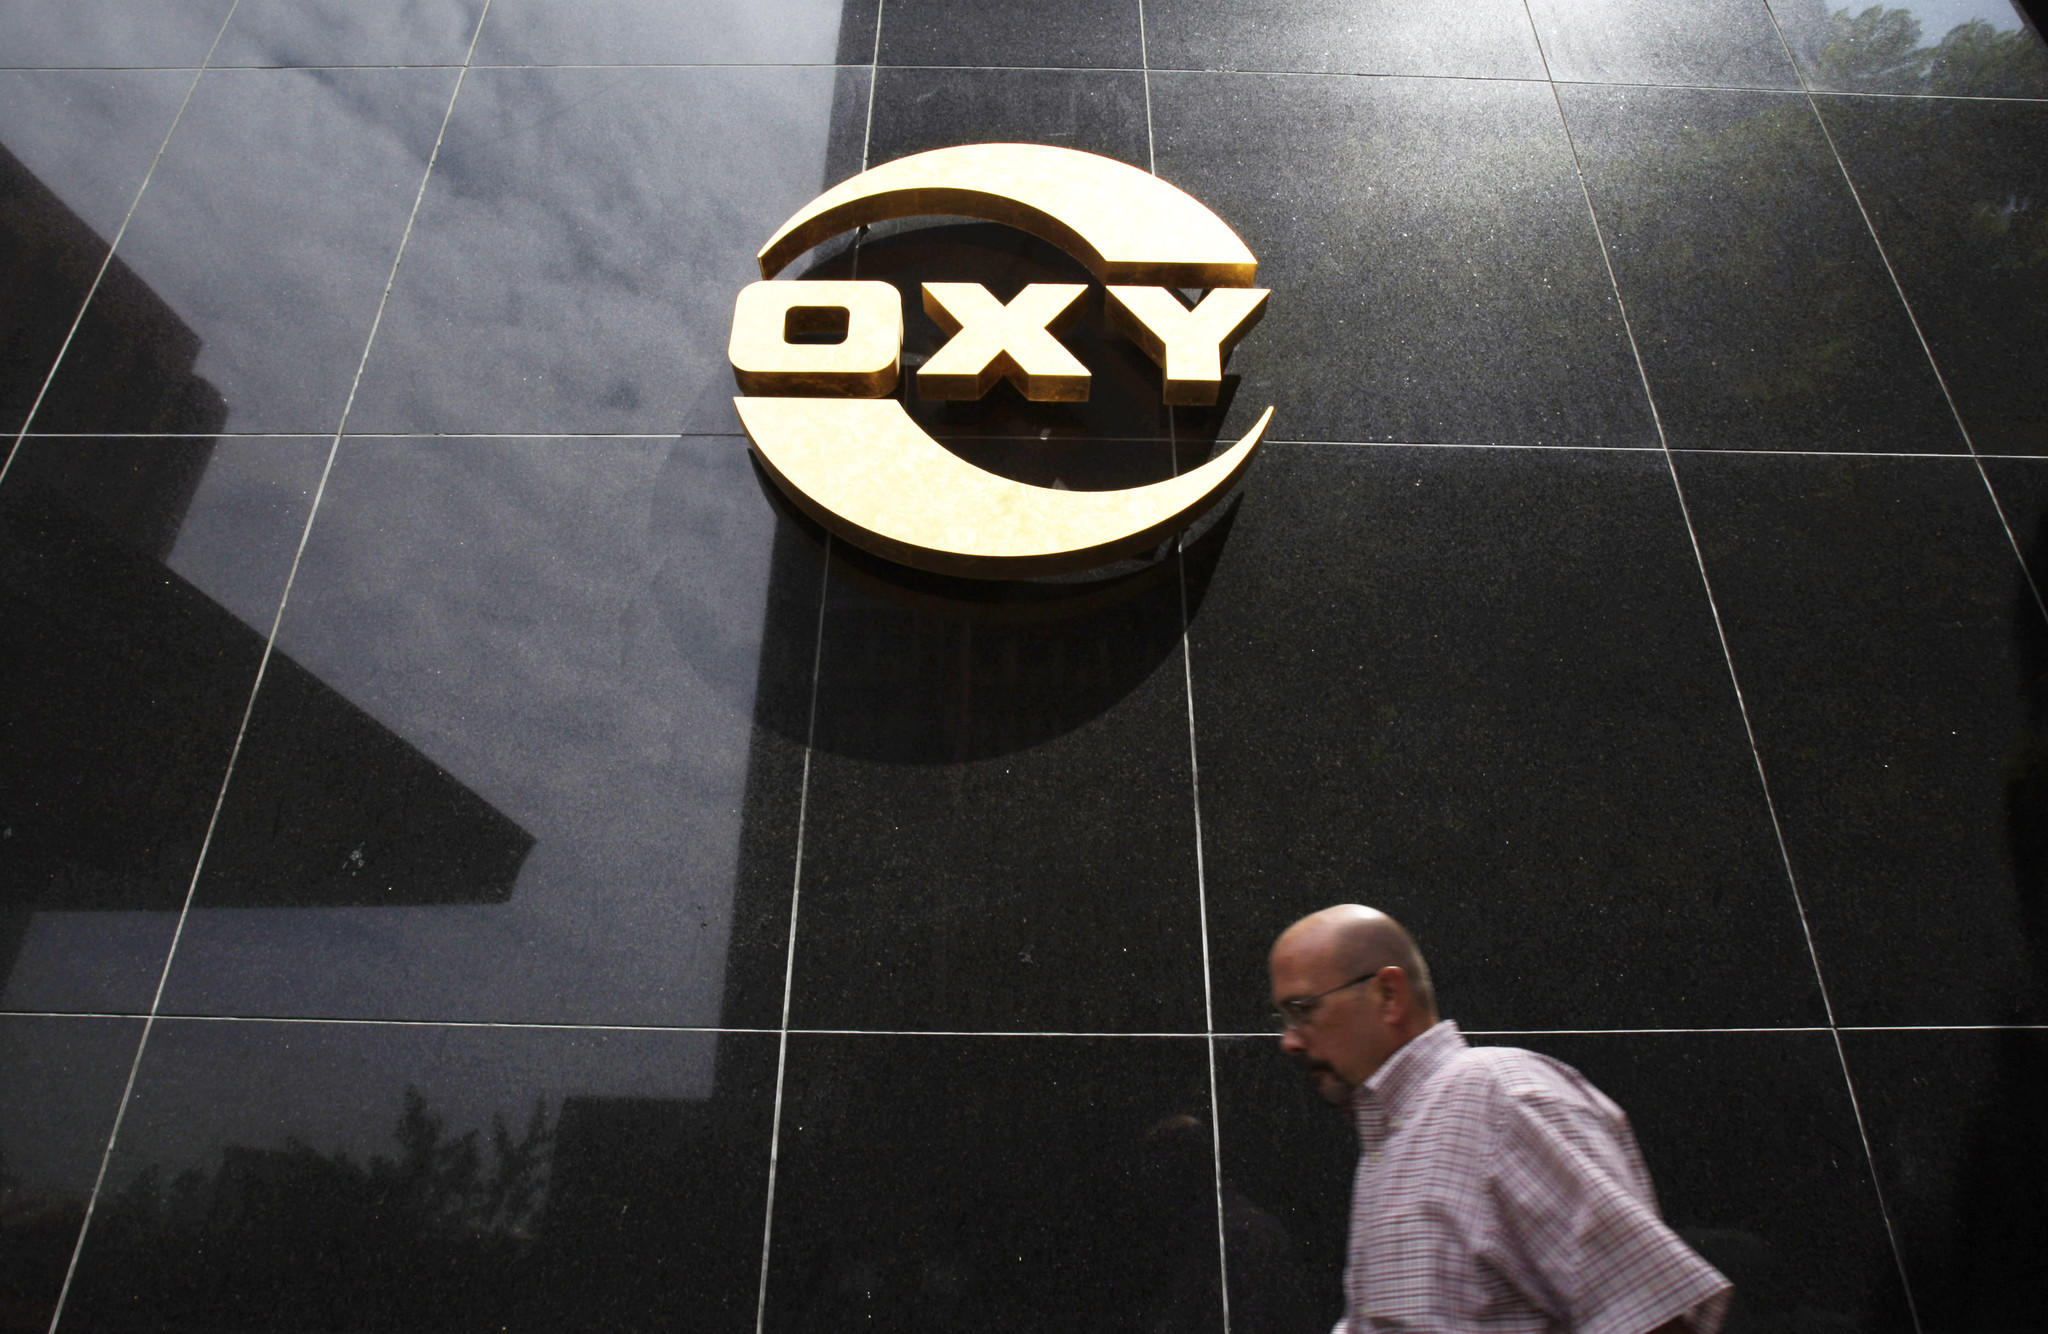 Occidental Petroleum is moving its headquarters to Houston after being based for nearly a century in Los Angeles.